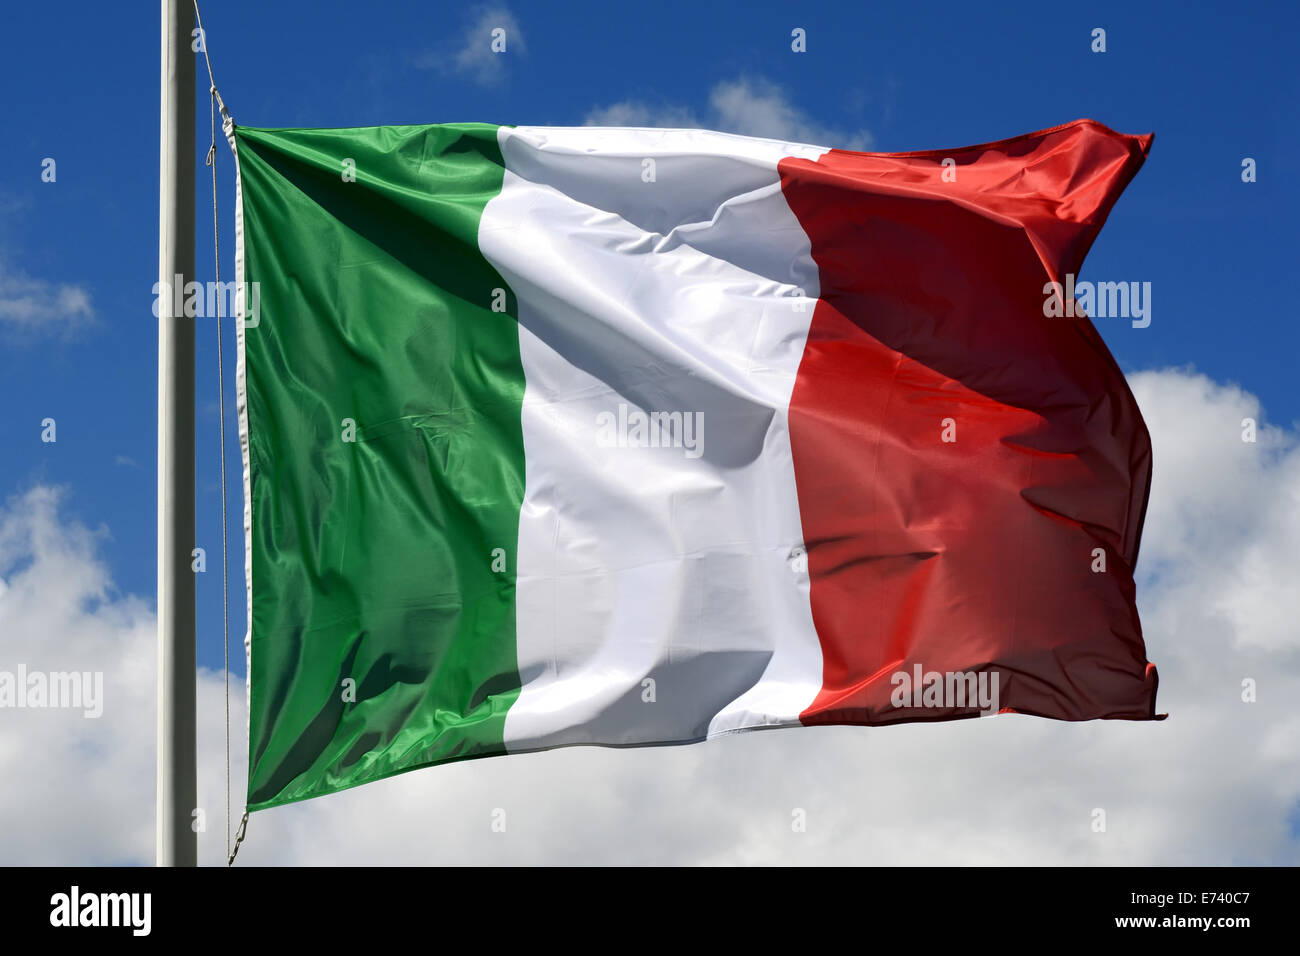 Flag of Italy fluttering in the wind - Stock Image